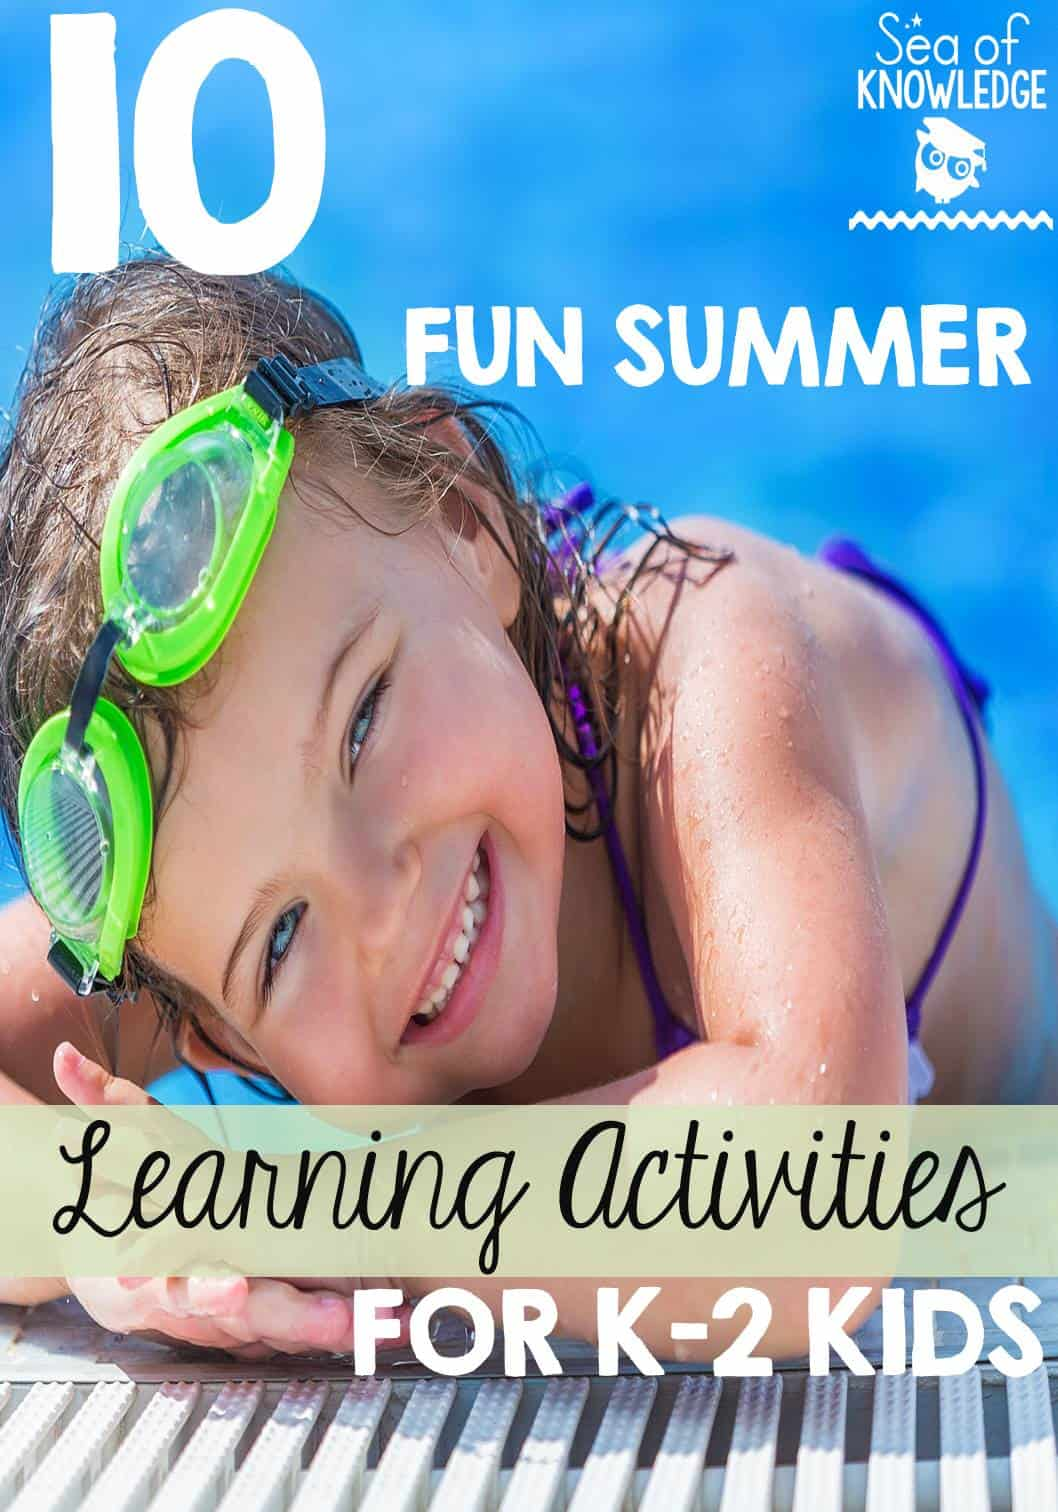 Summer Learning Activities for School Kids in K-2